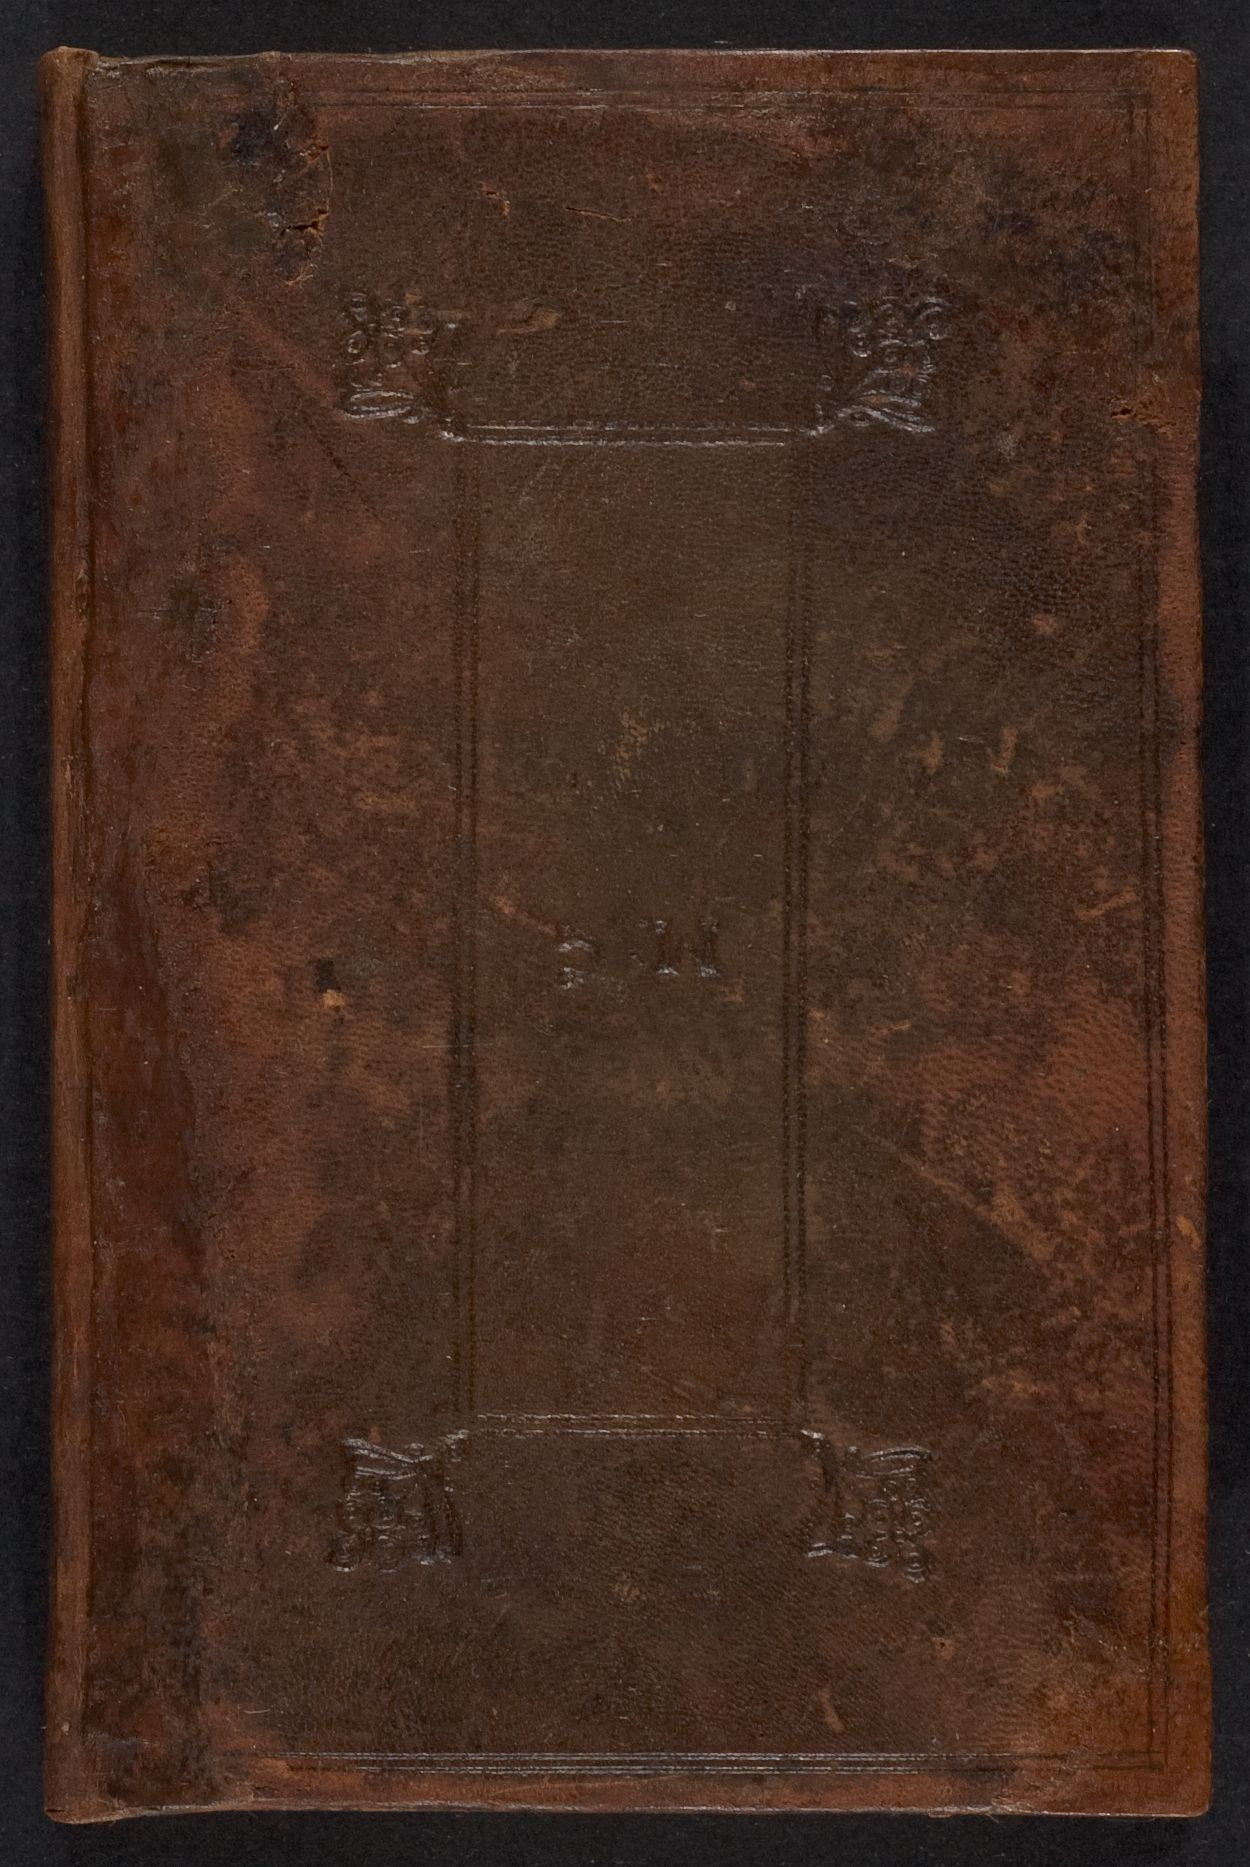 Student notebook of Marston Cabot, ca. 1720-1735